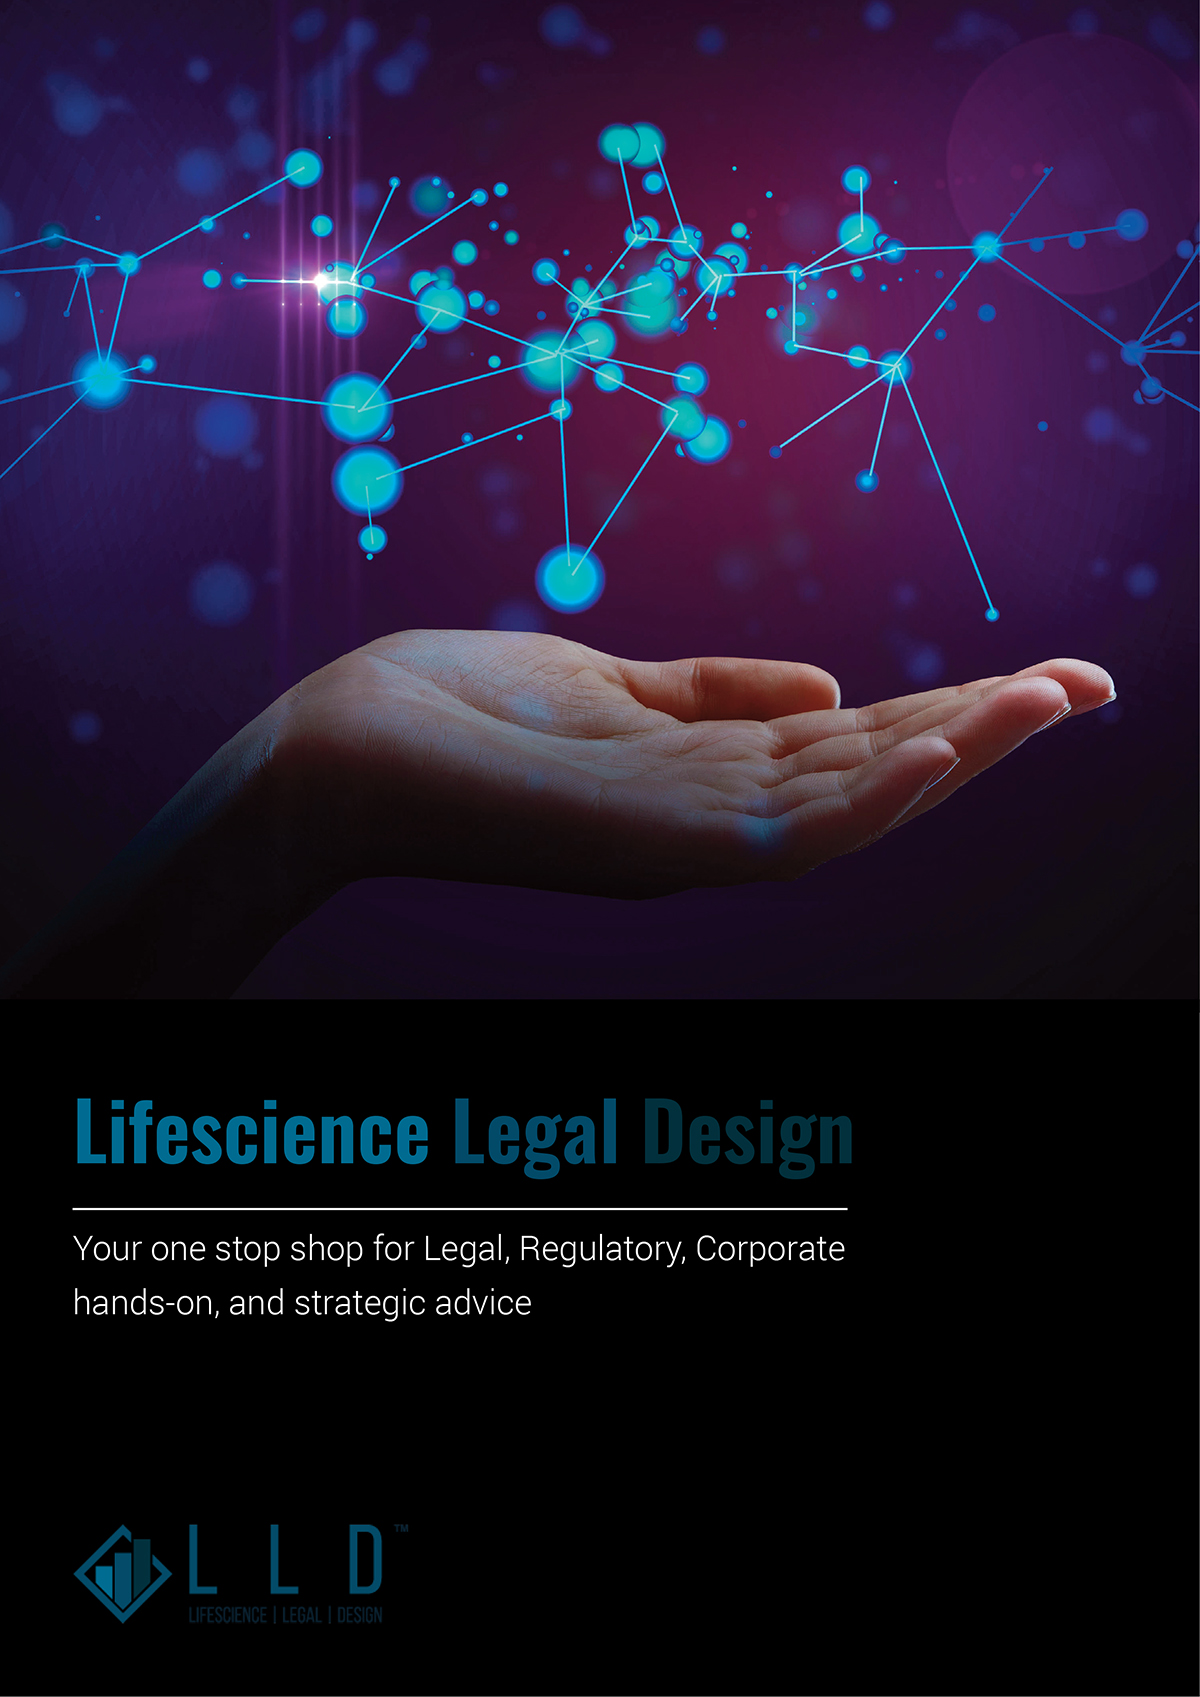 medical cannabis and hemp, Lifescience Legal Design